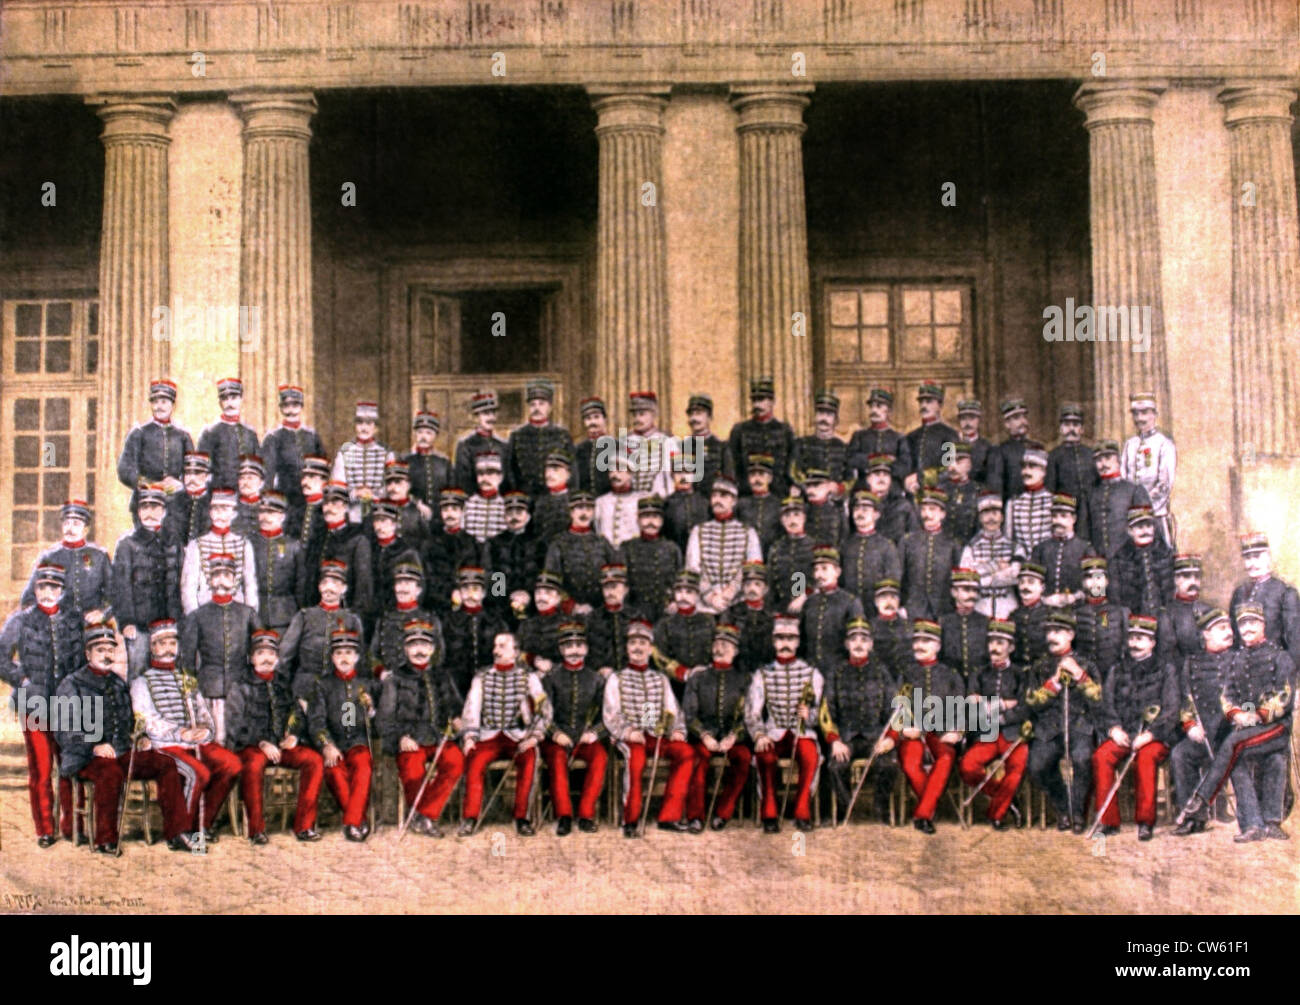 The 19th graduating class (1893-1895)  of the national war college (1895) - Stock Image